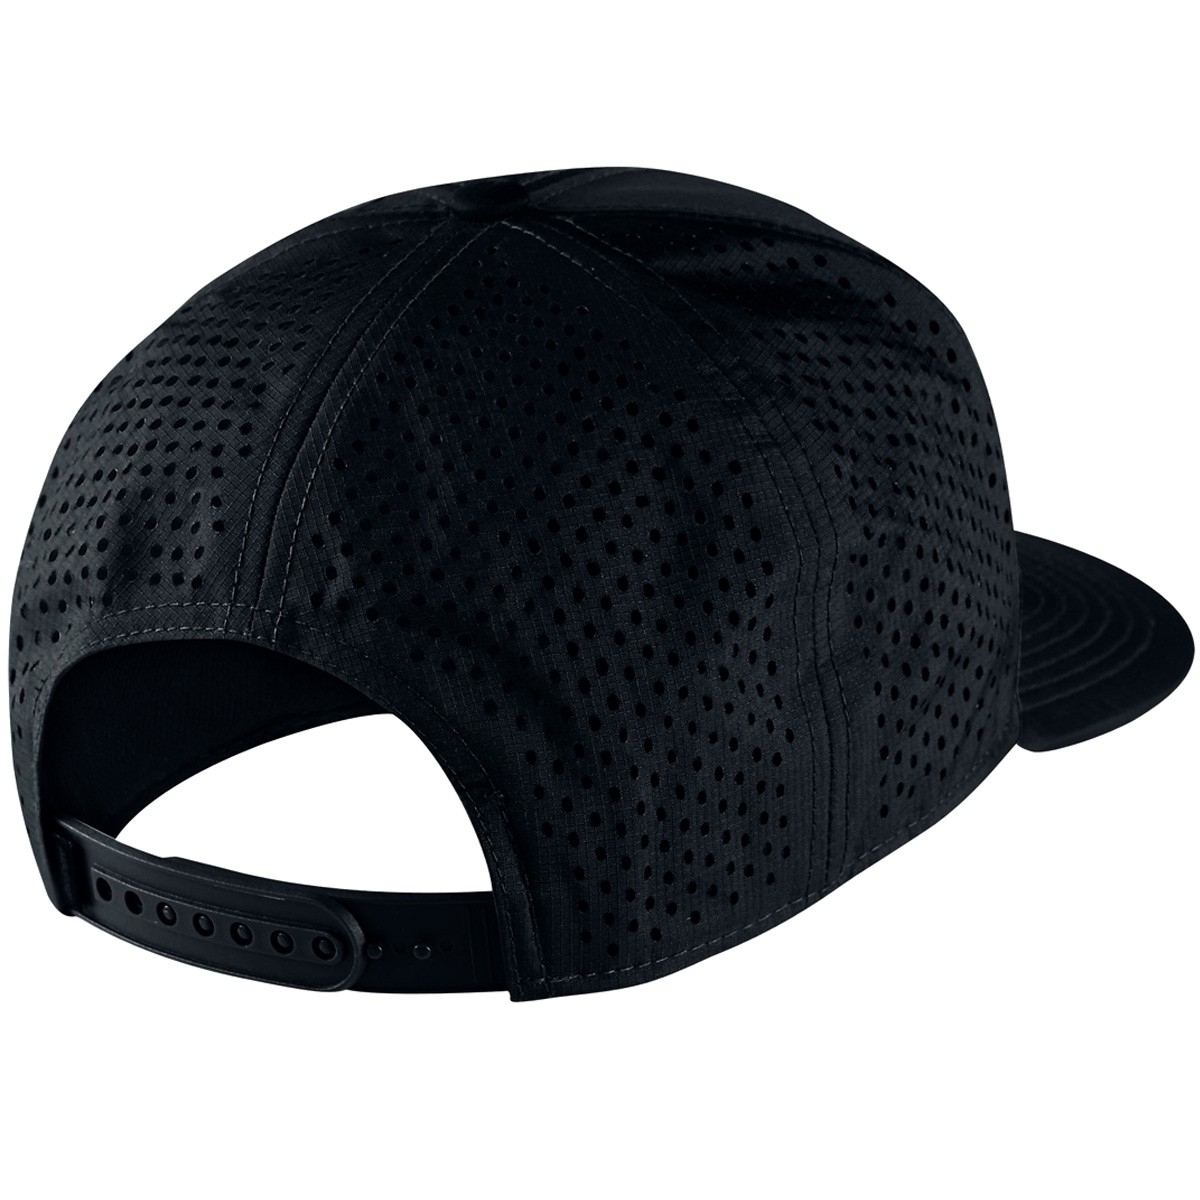 dc12051699b Nike SB Performance Trucker Hat - Black Black Black White